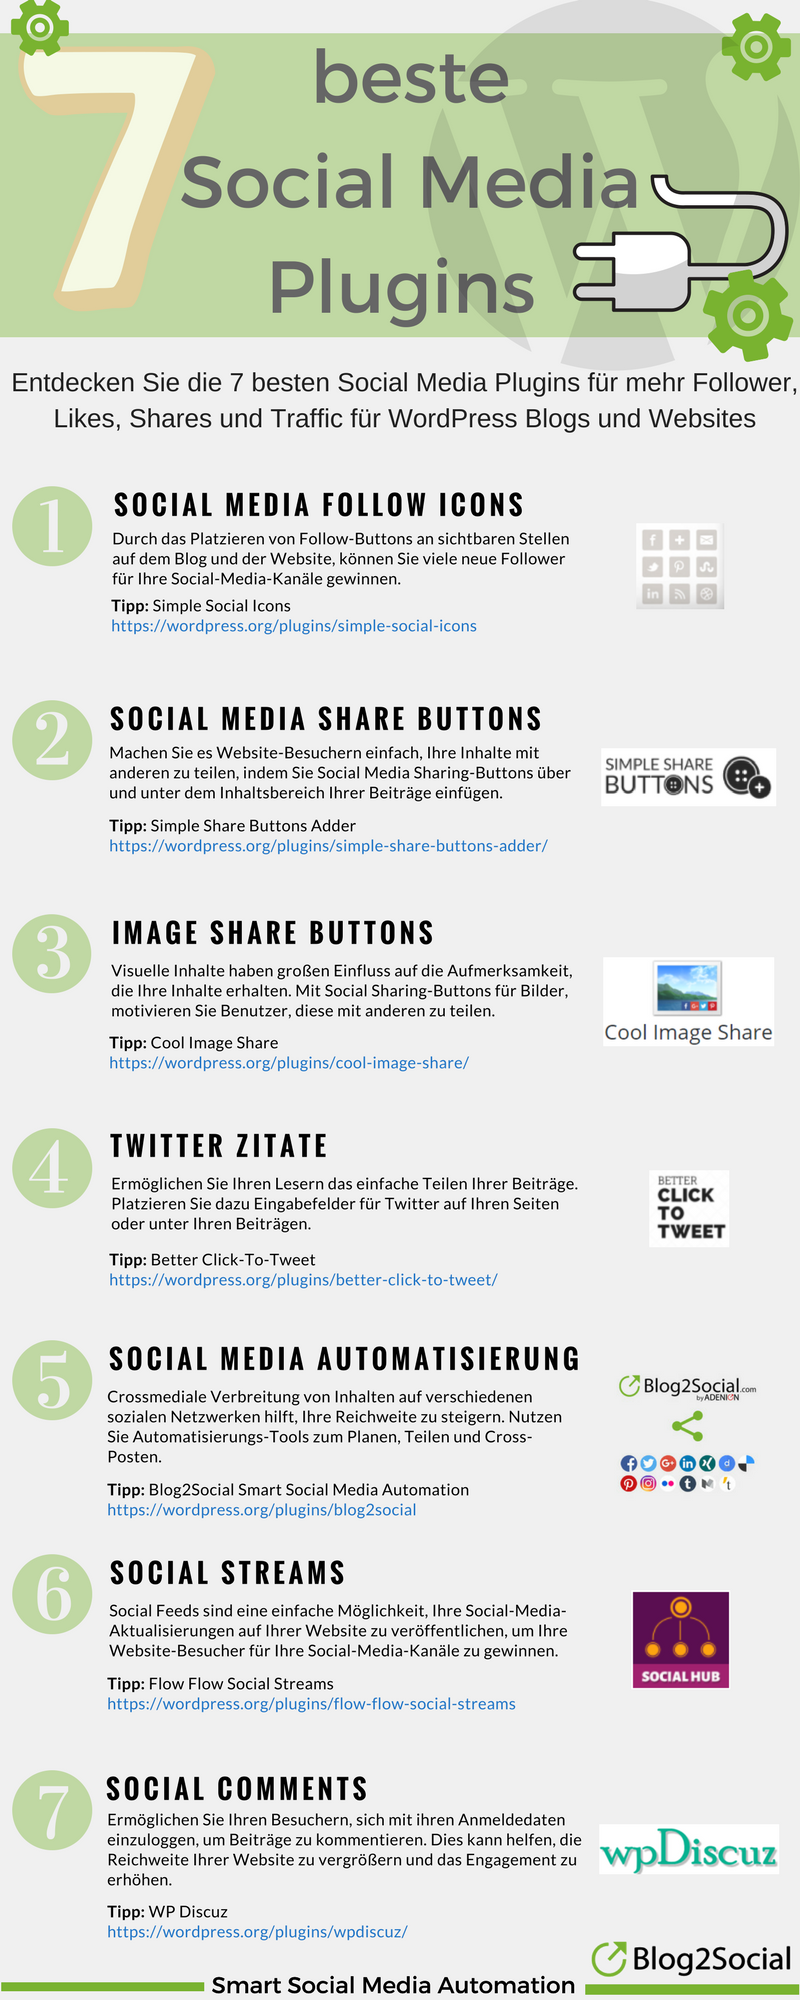 Die 7 besten Social Media Plugins für WordPress + 55 Alternativen